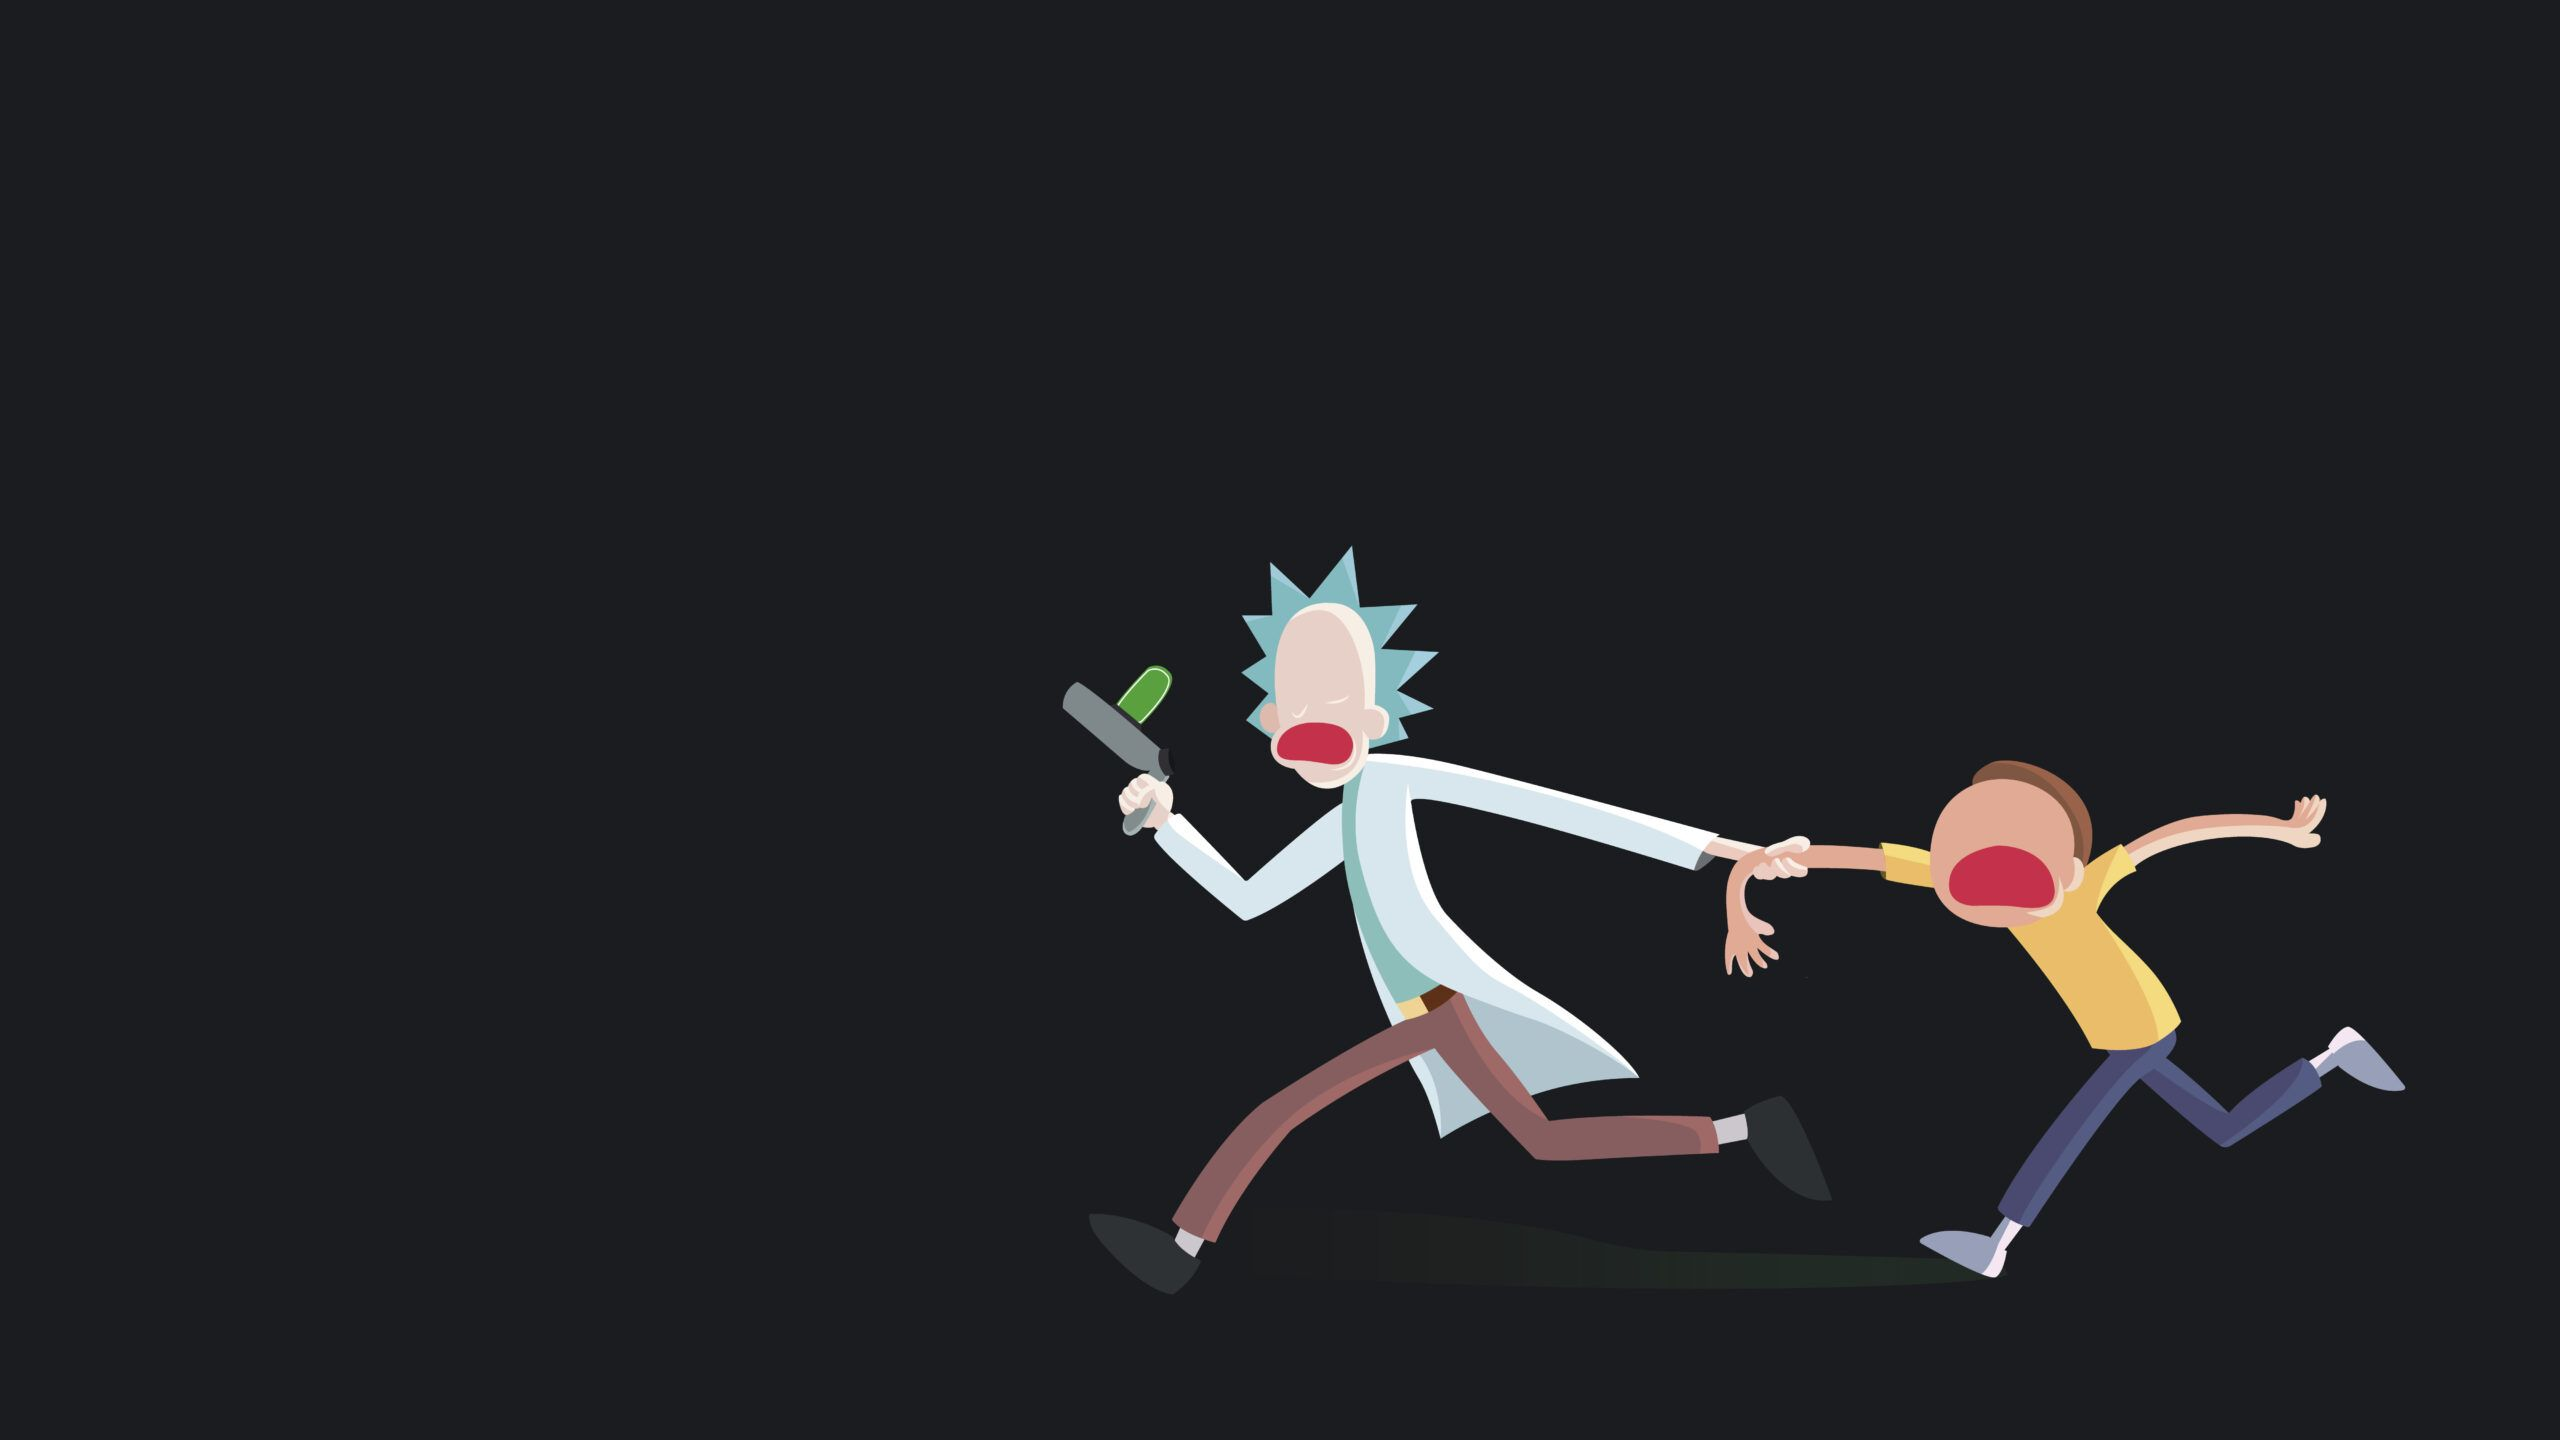 Rick And Morty Mac Wallpaper In 2020 Wallpaper Pc Mac Wallpaper Cool Wallpapers For Phones